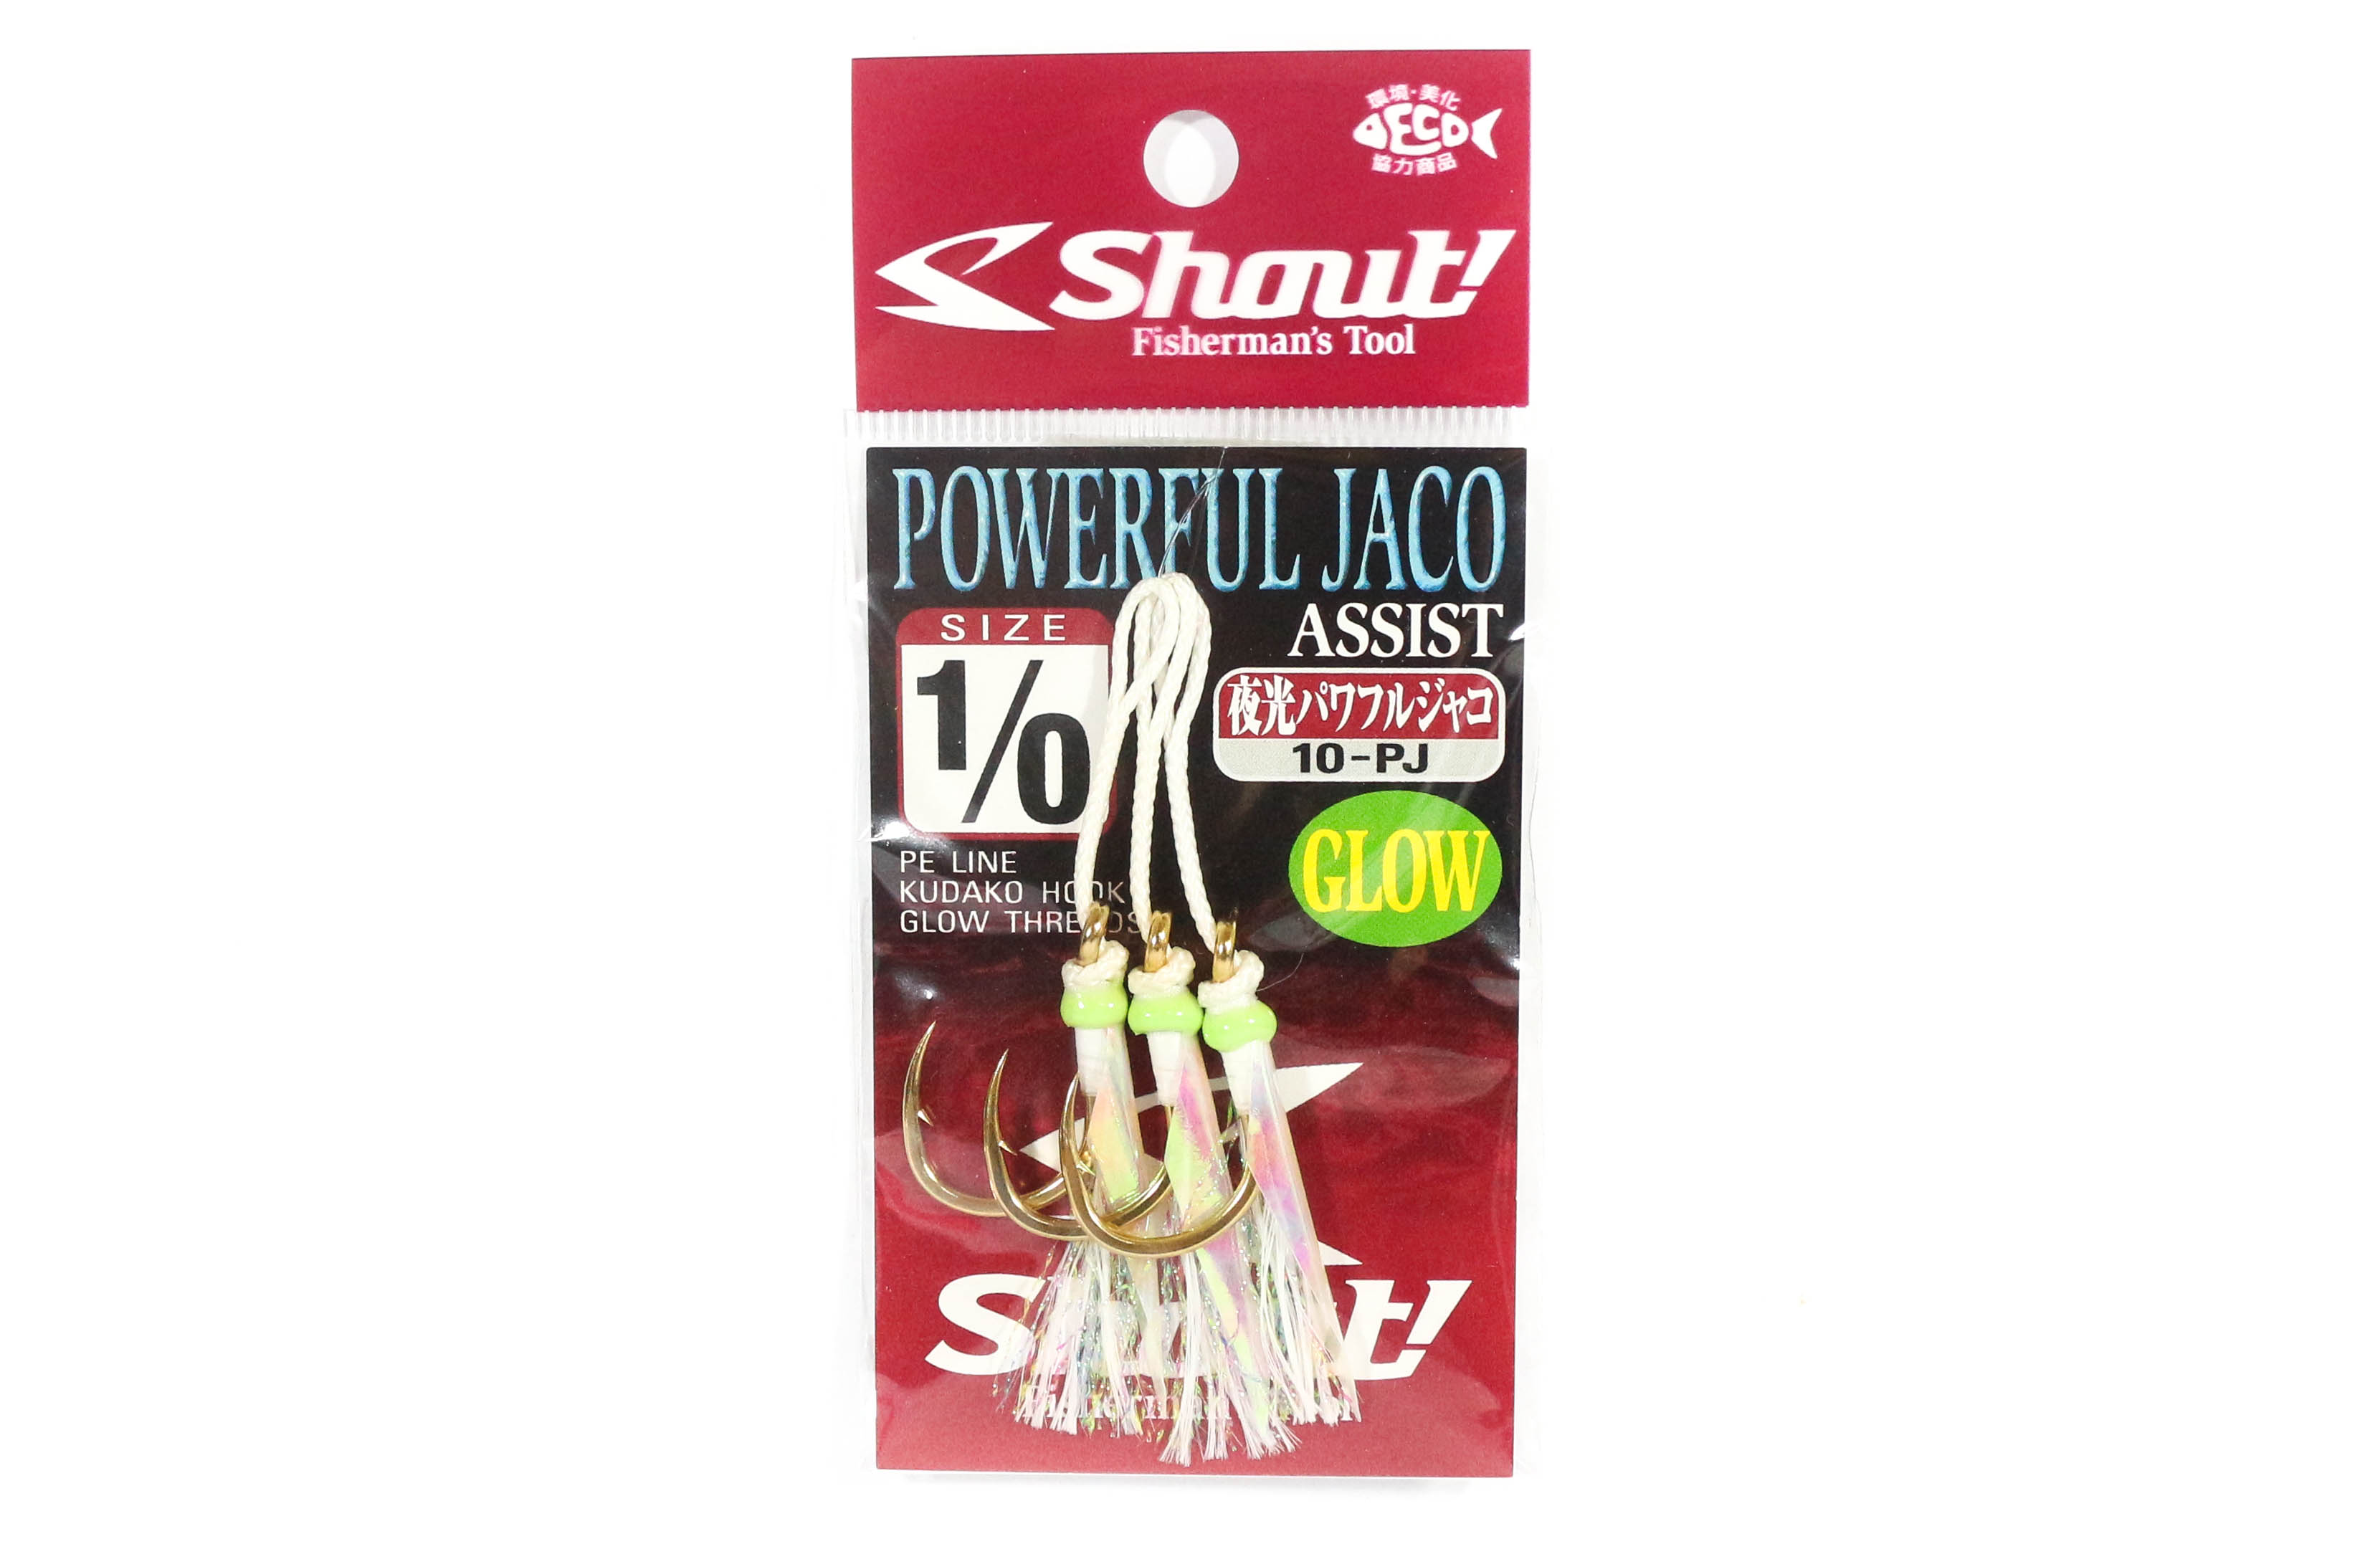 Shout 10-PJ Powerful Jaco Hook Rigged Assist Glow Size 1/0 (8100)